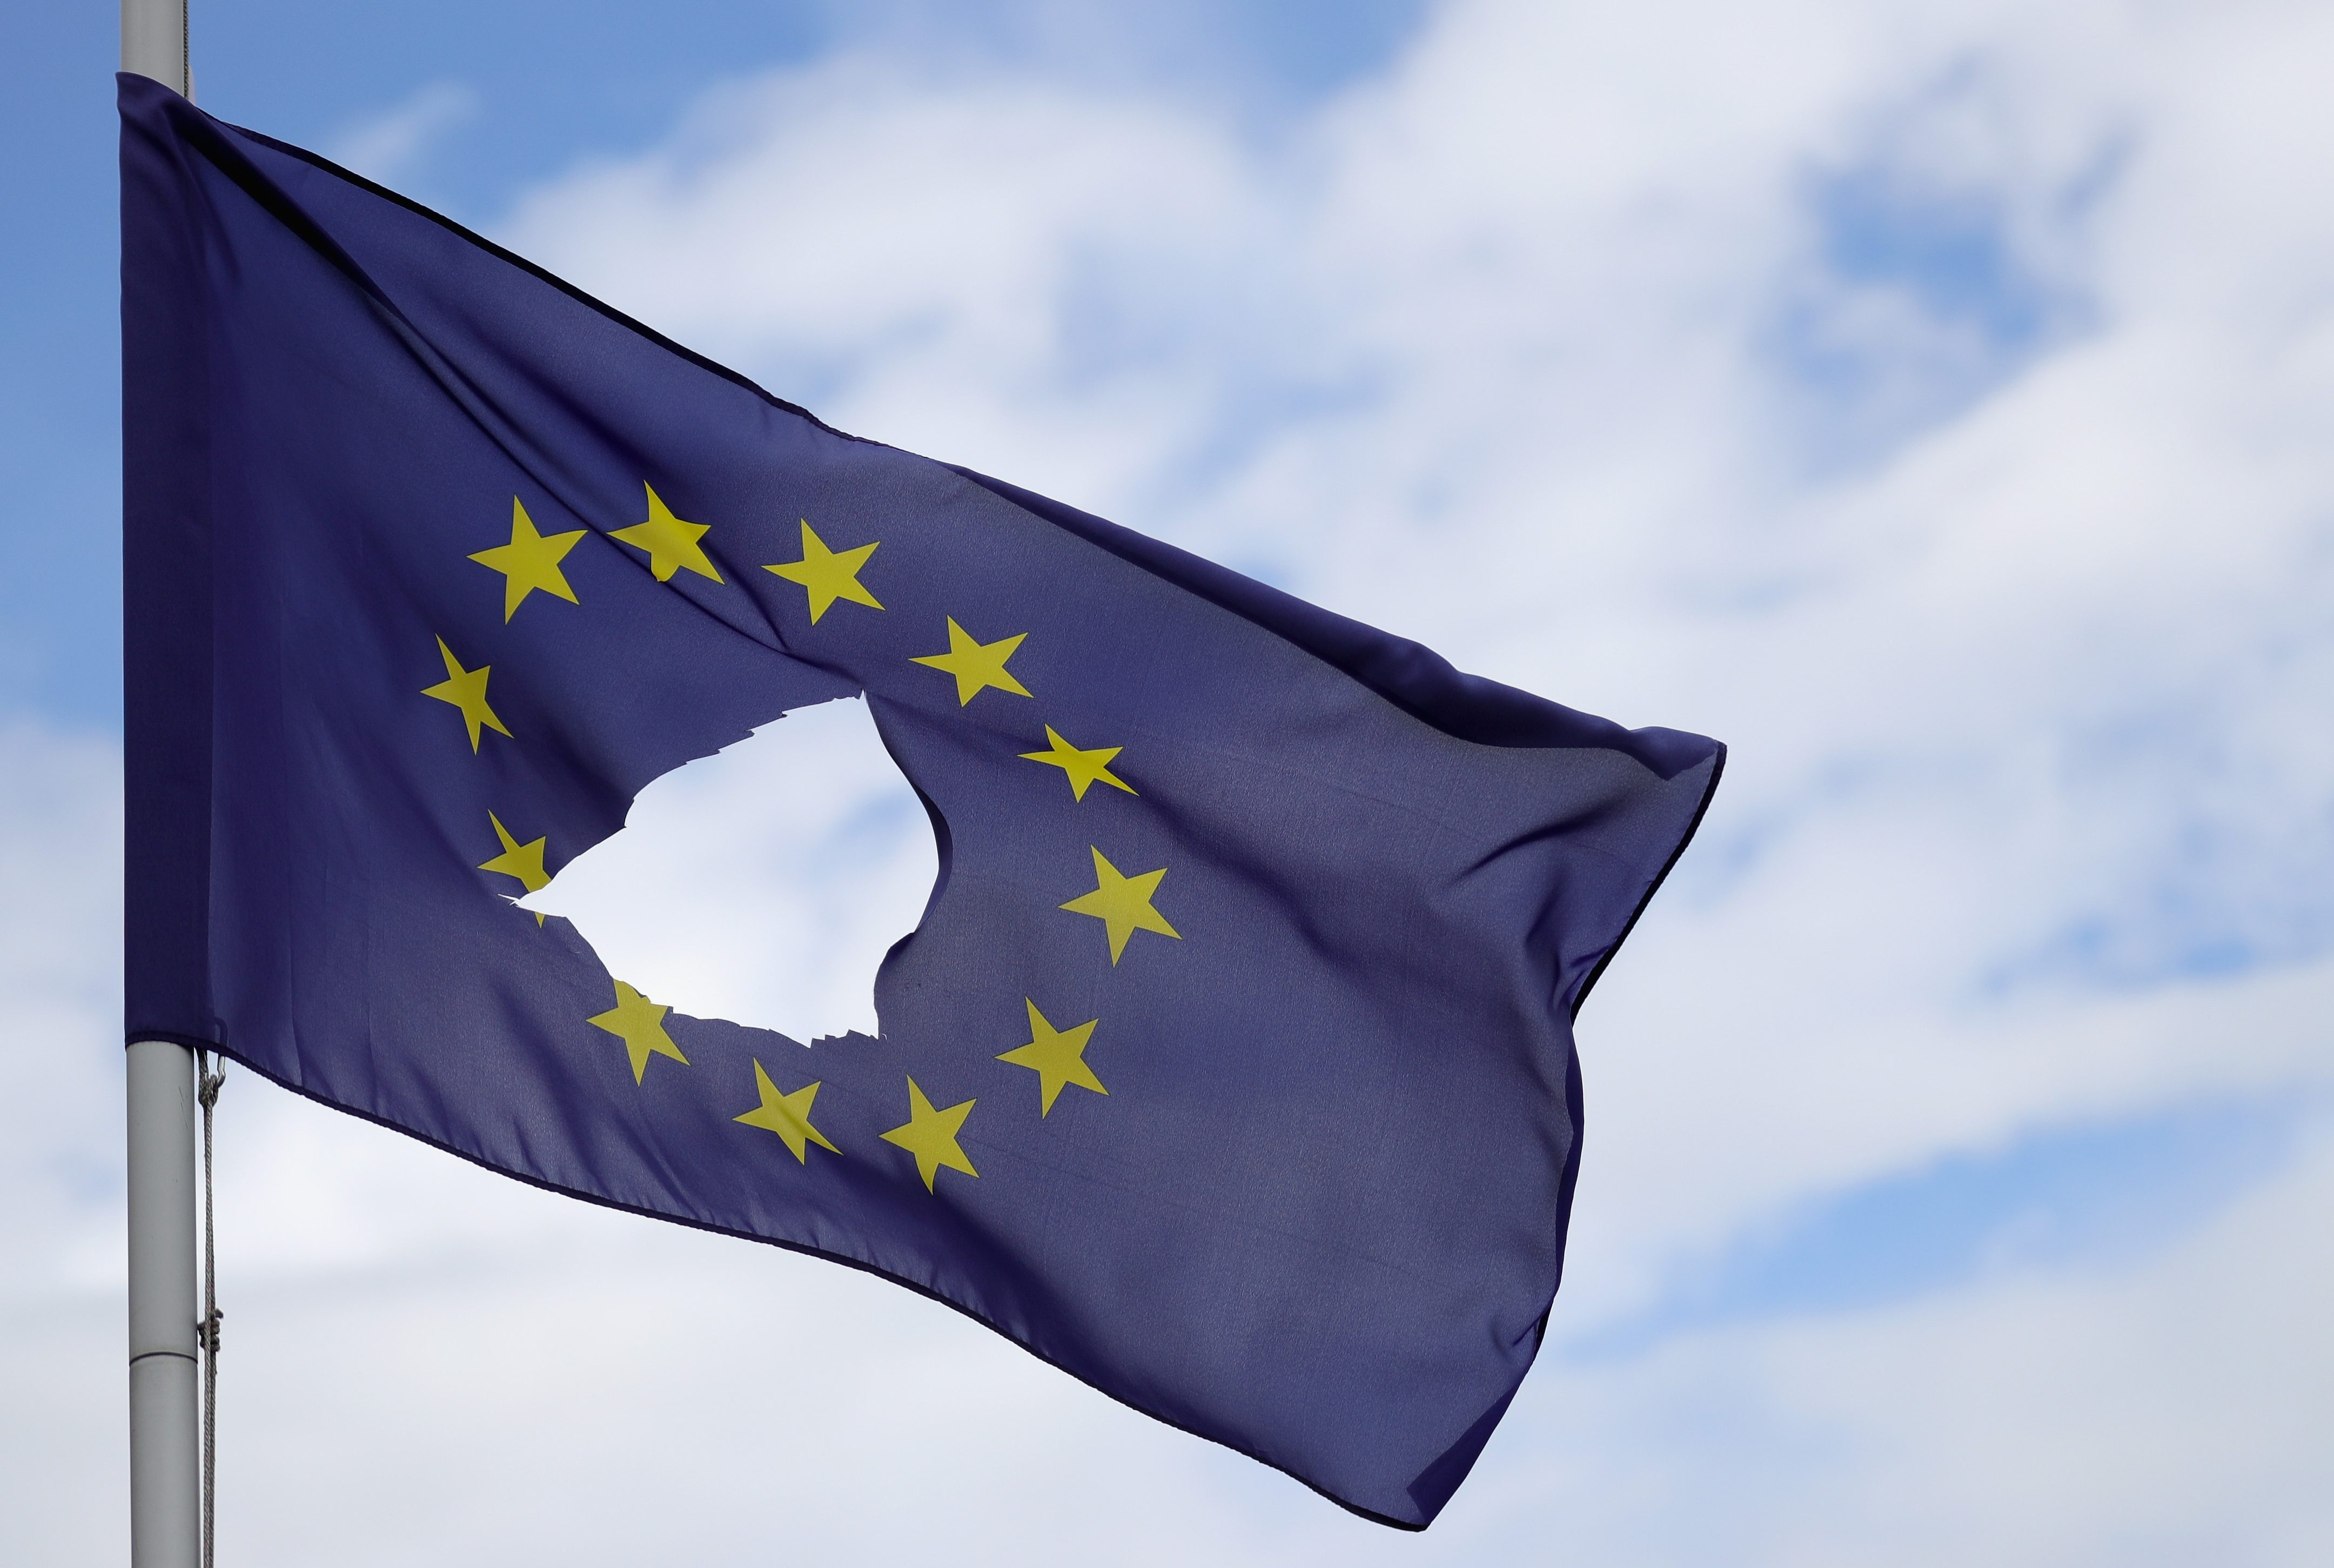 KNUTSFORD, UNITED KINGDOM - JUNE 24: A European Union flag, with a hole cut in the middle, flies at half-mast outside a home in Knutsford Cheshire after today's historic referendum on June 24, 2016 in Knutsford, United Kingdom. The results from the historic EU referendum has now been declared and the United Kingdom has voted to LEAVE the European Union. (Photo by Christopher Furlong/Getty Images)